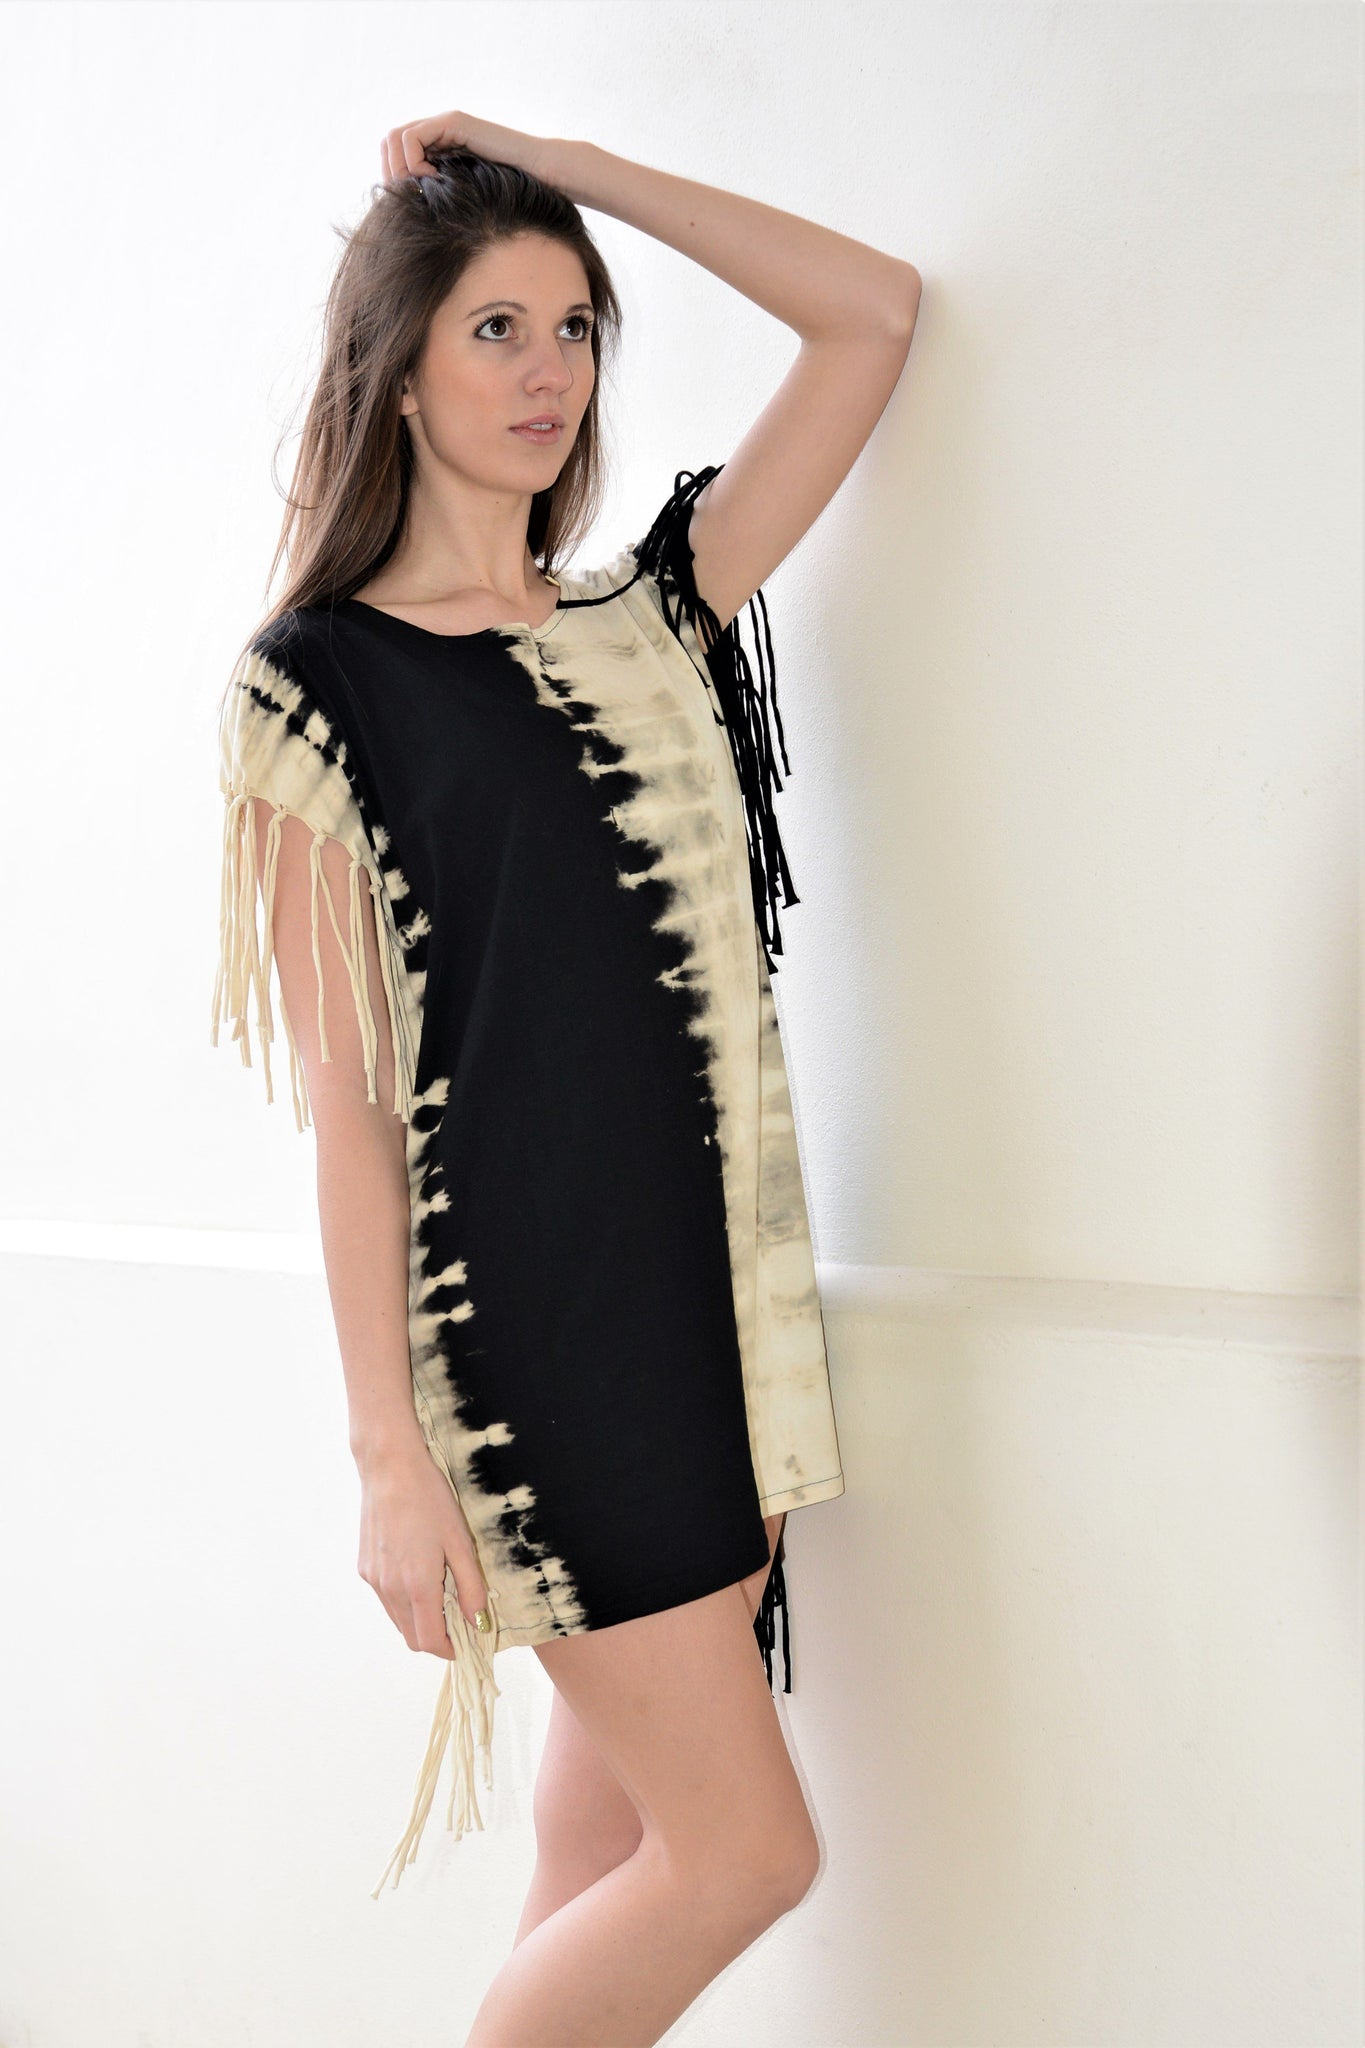 Tie Dye Short Dress with Fringed Black & White - CCCollections